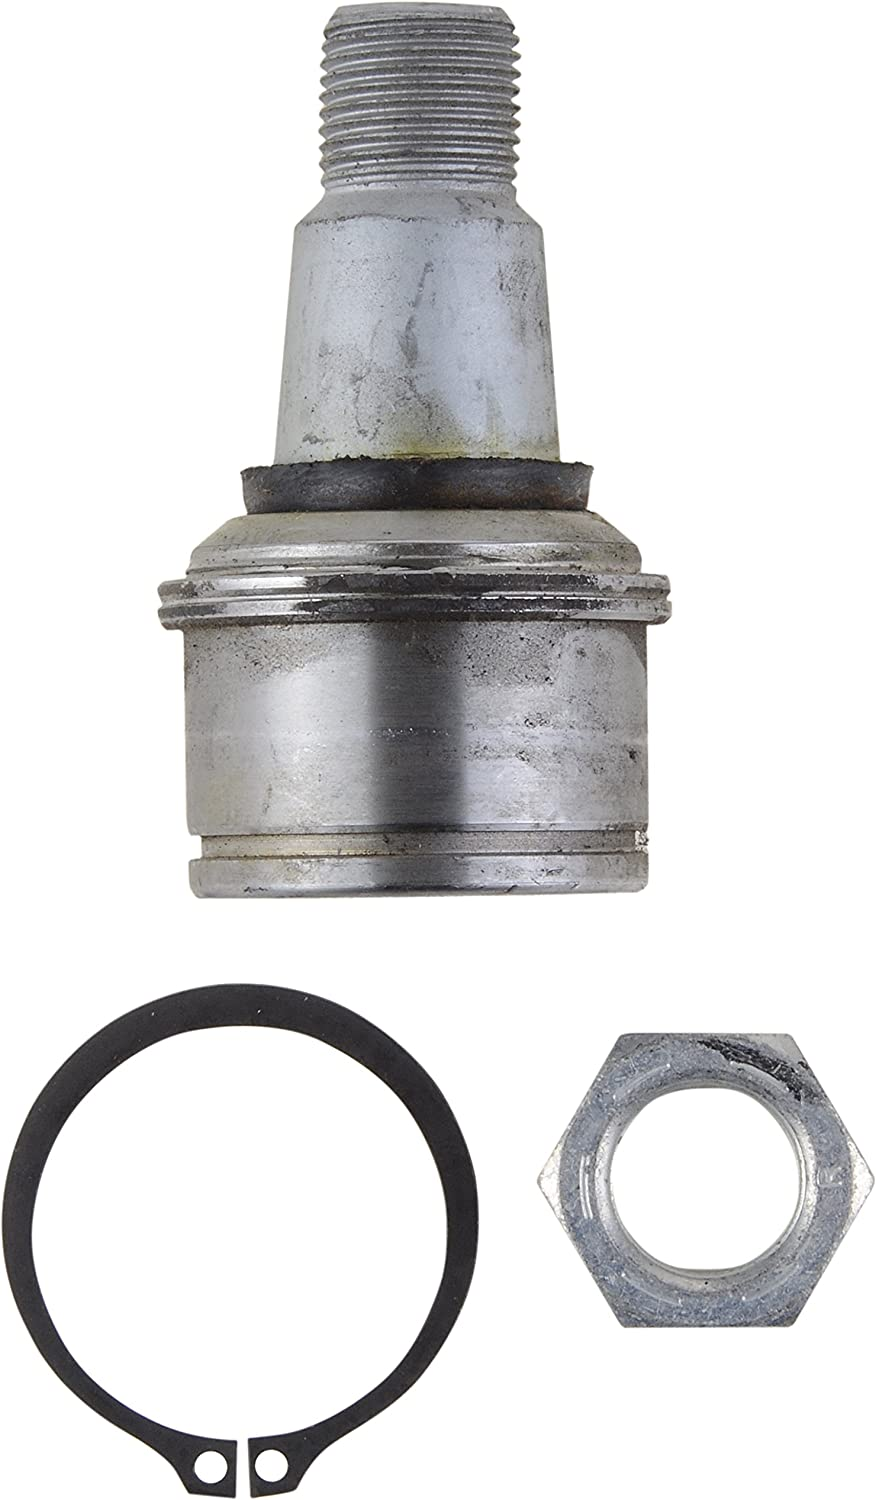 TRW Automotive JBJ1089 Suspension Ball Joint for Ford F-250 Supe